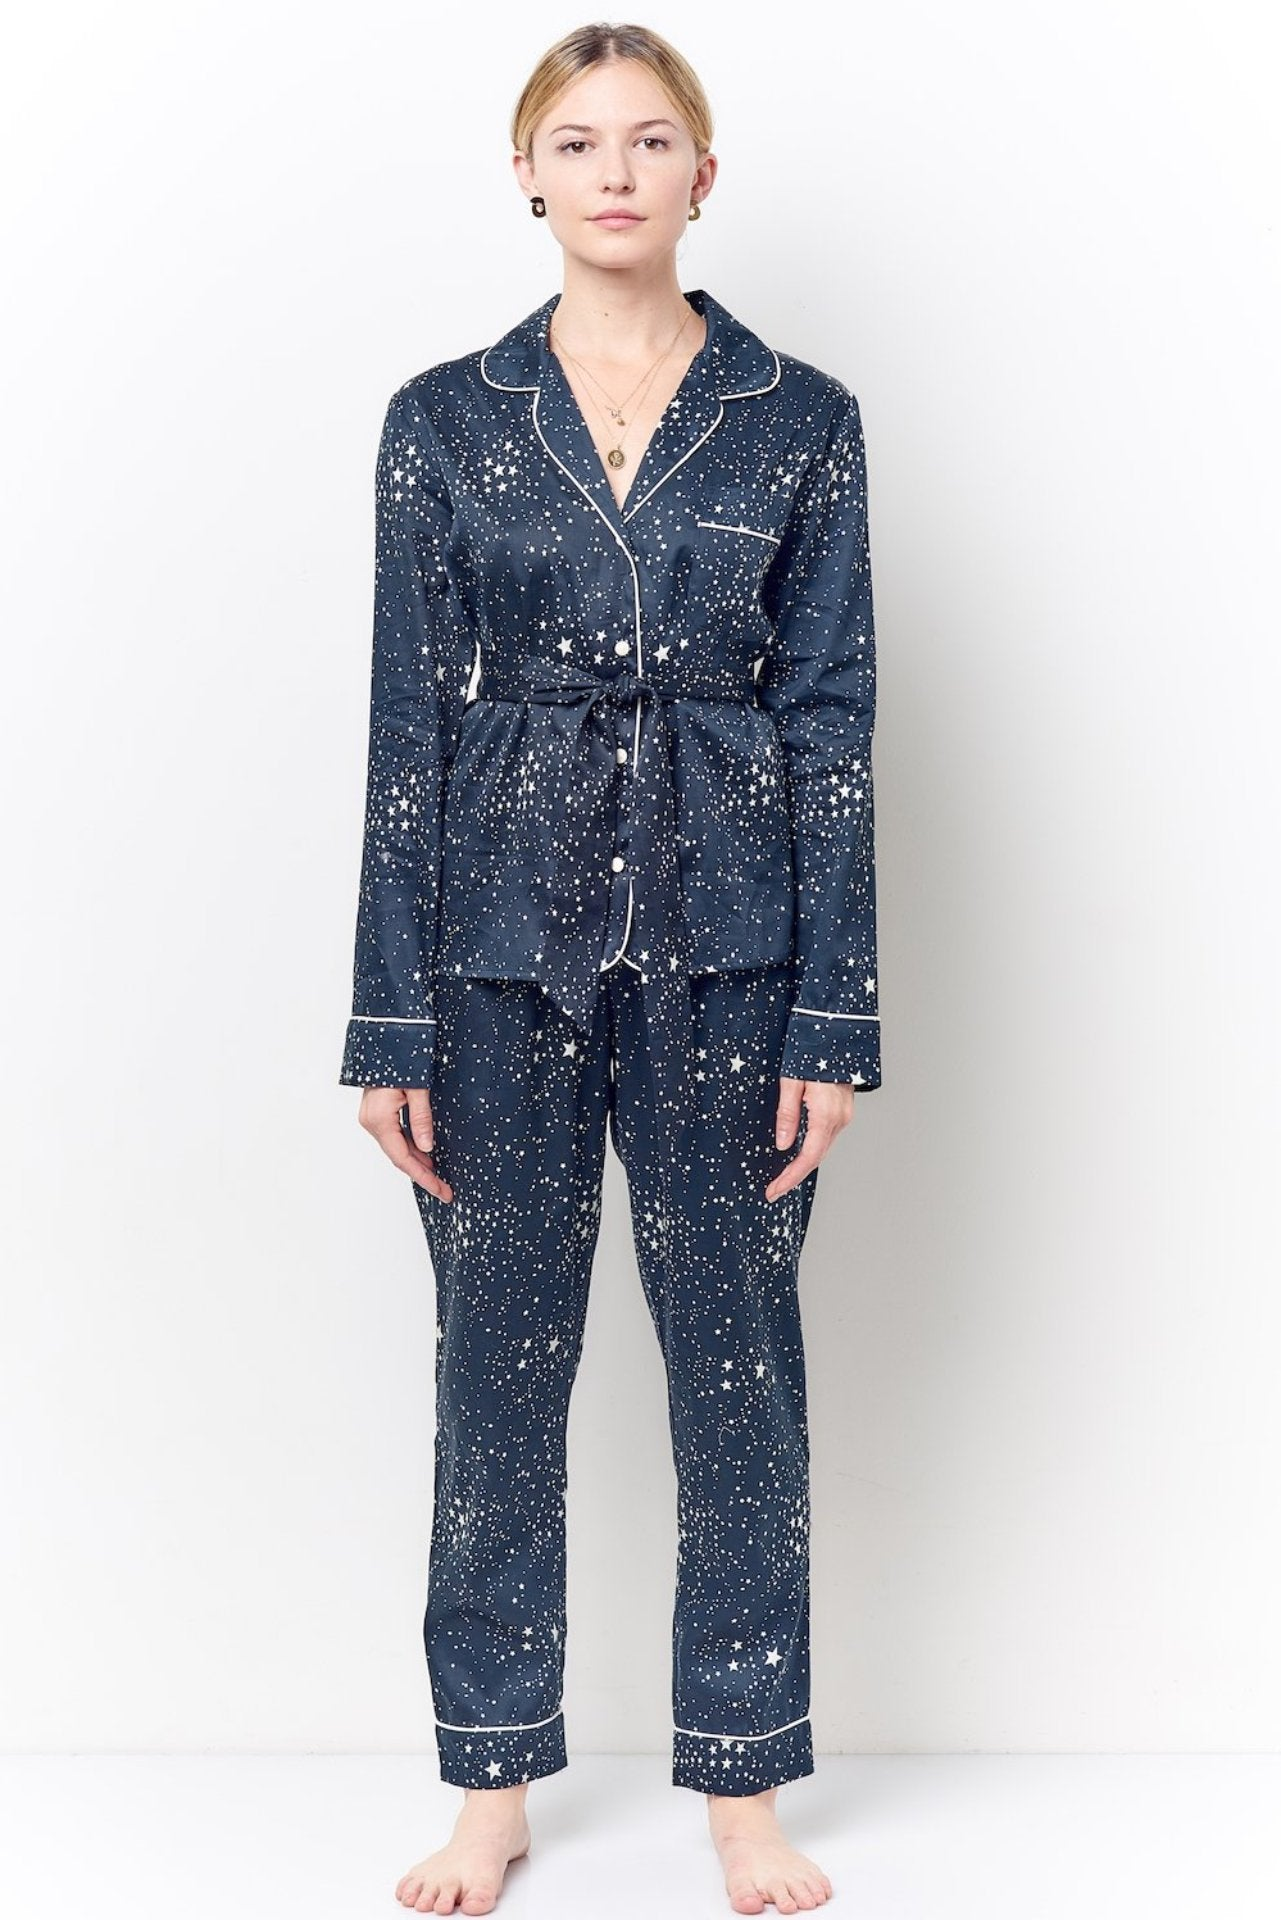 SIENNA Cocktail L/S Pajama Set - Star